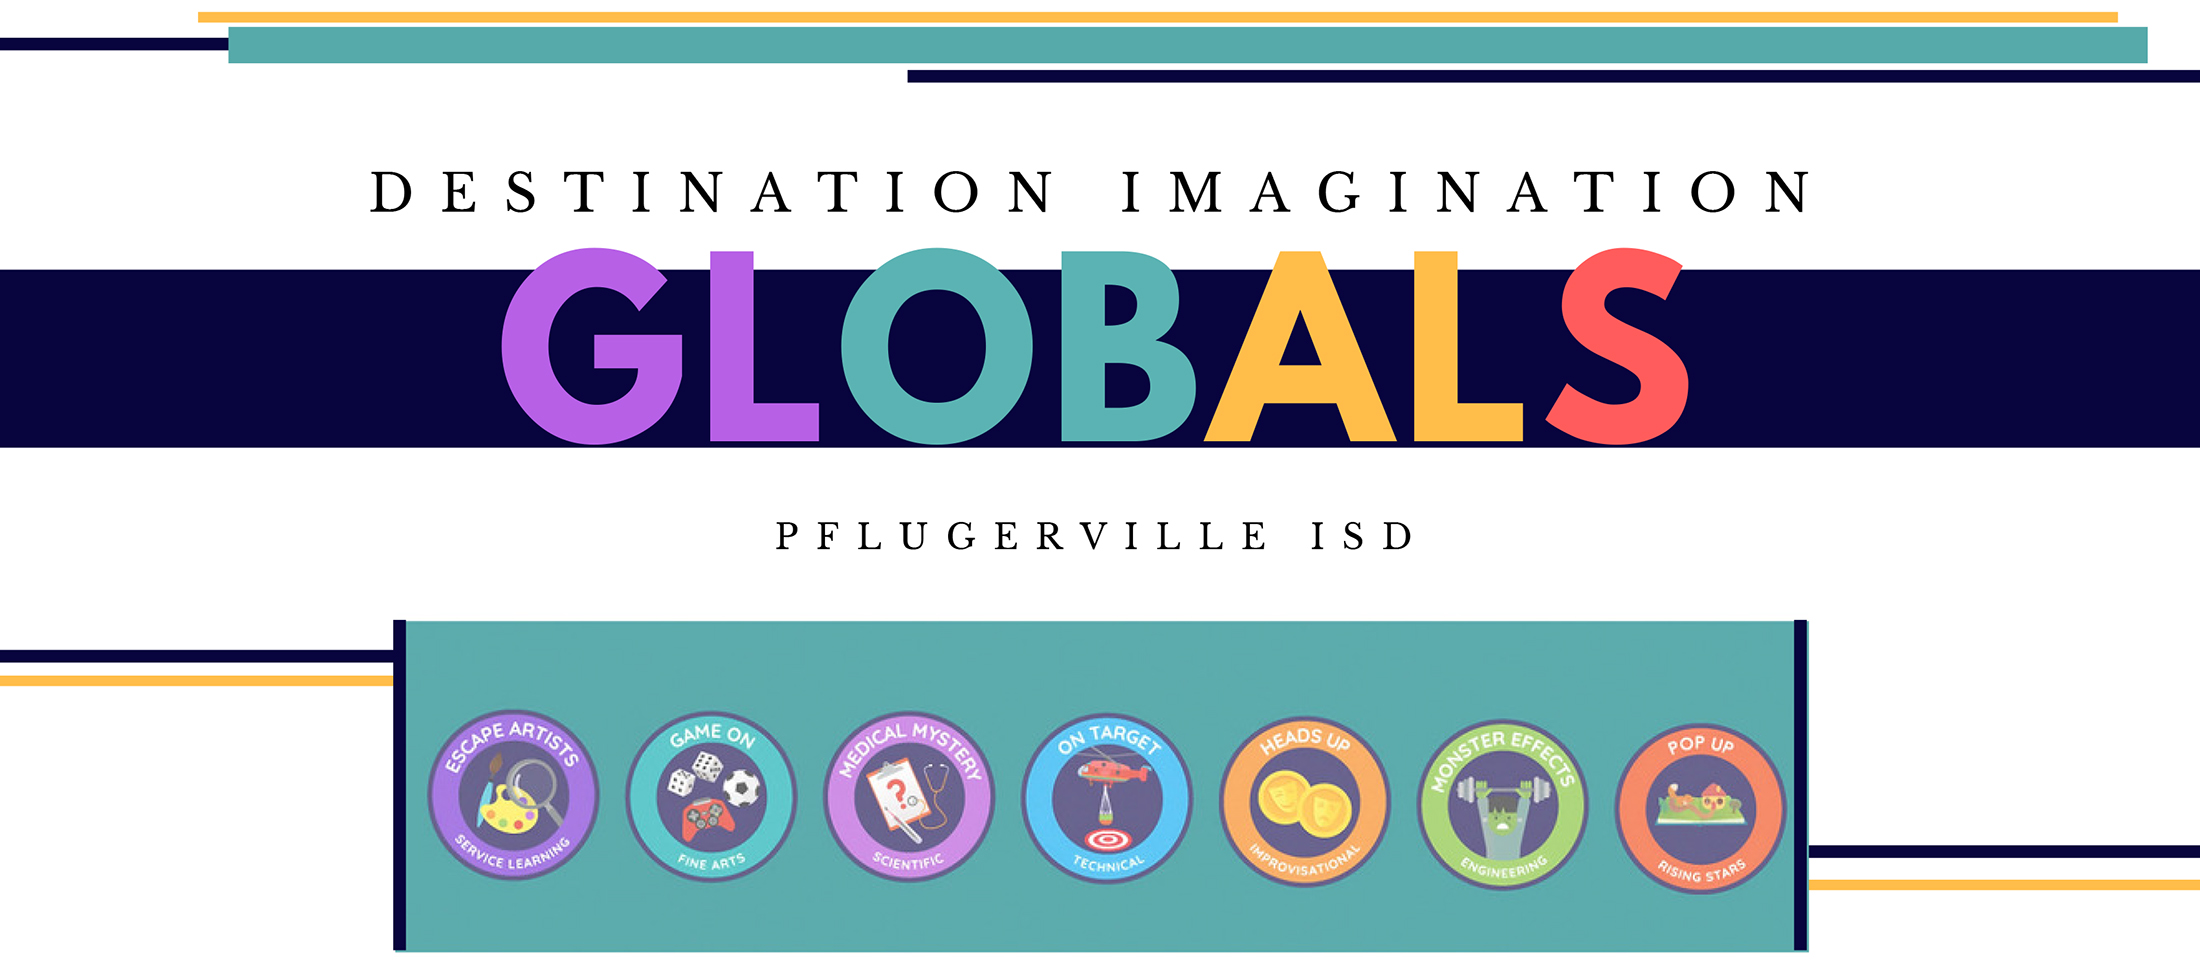 Teams advance to Destination Imagination Globals